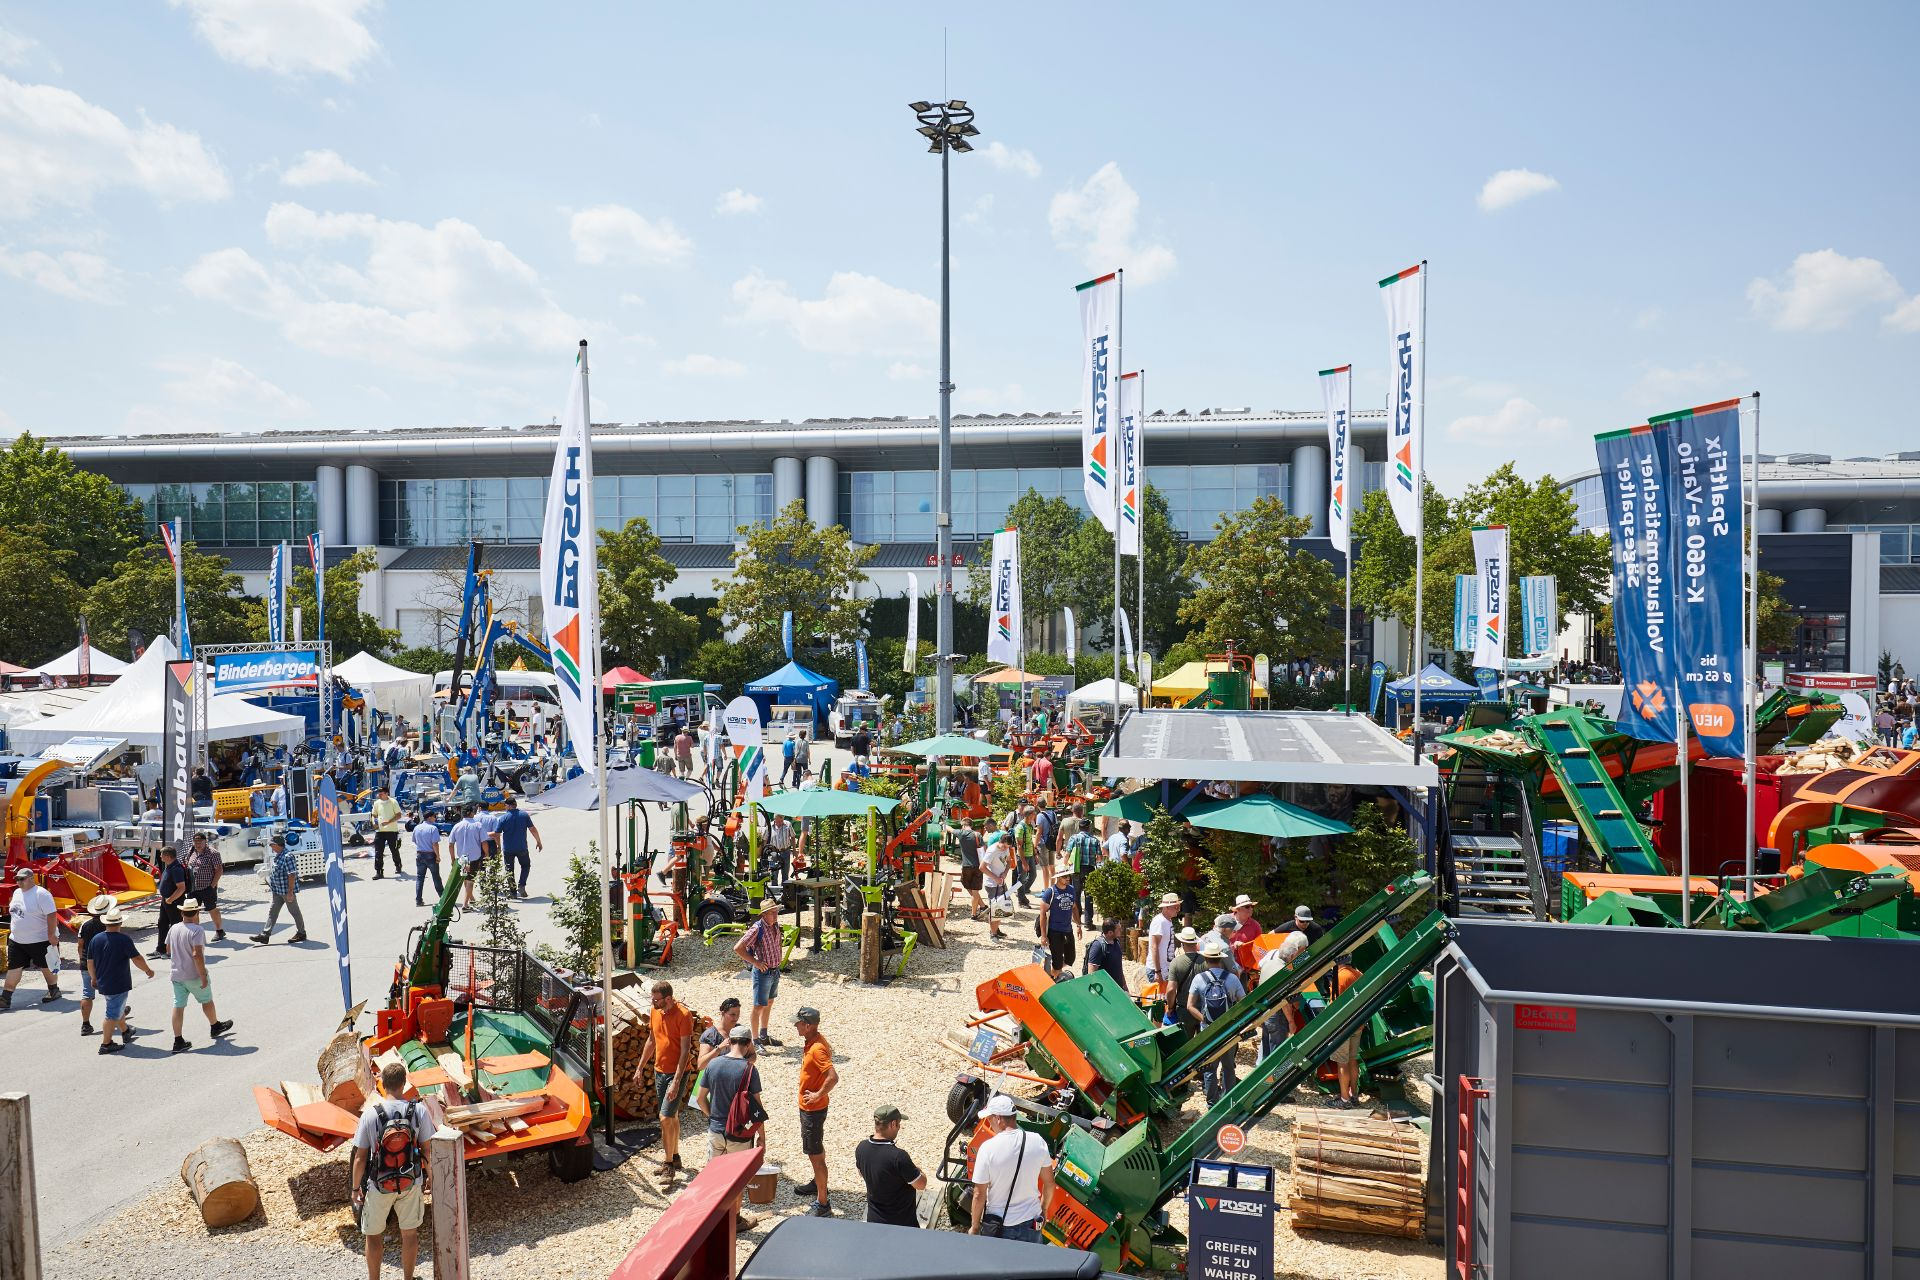 The Interforst outdoor exhibition site